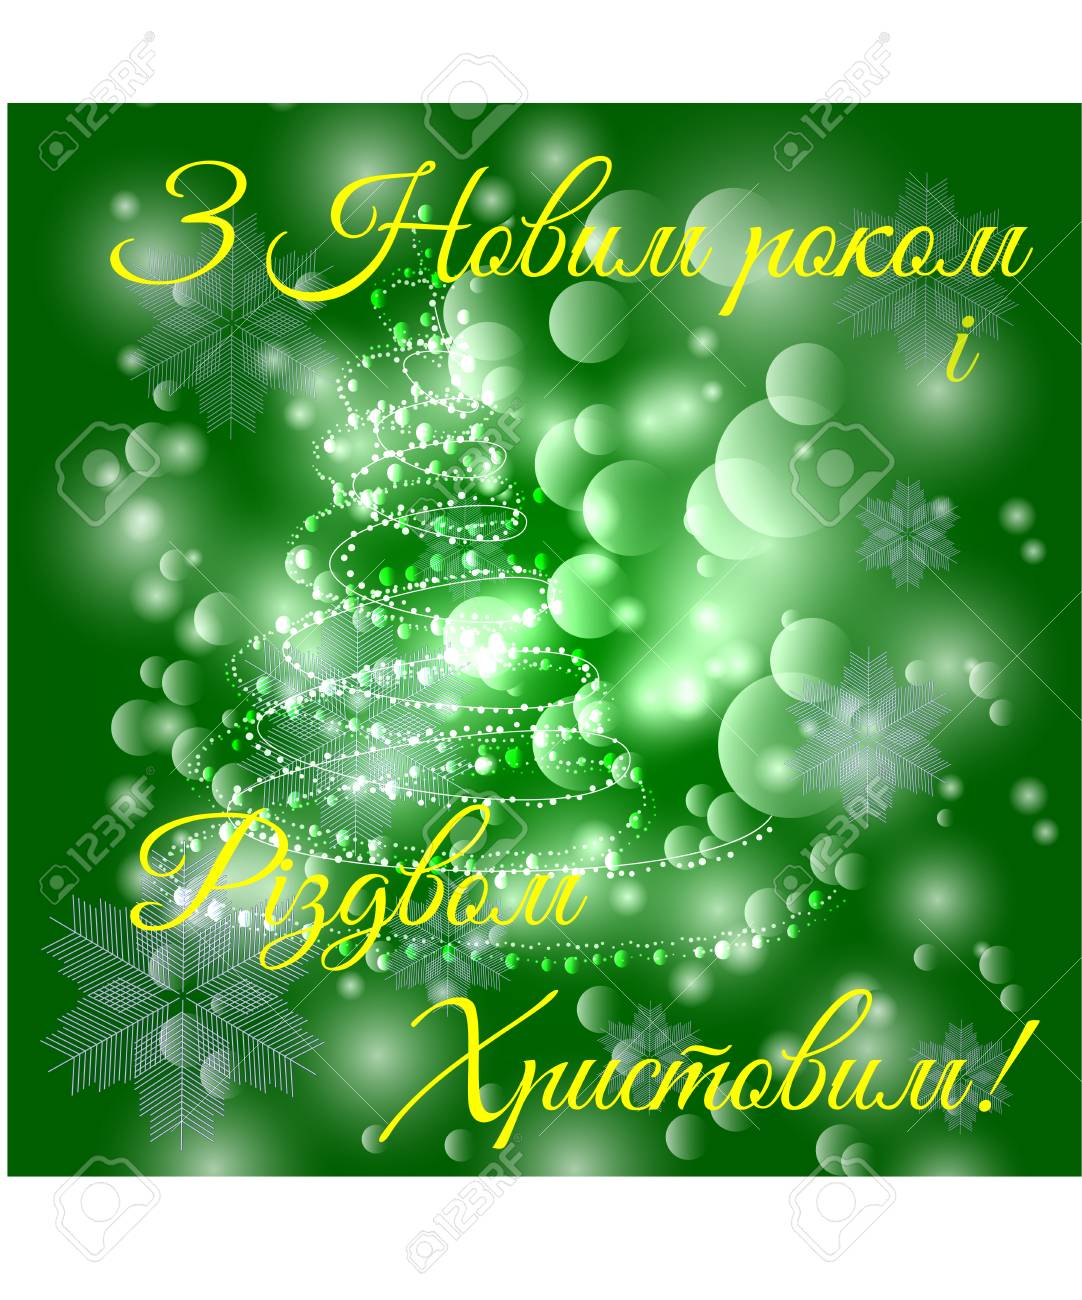 inscription in ukrainian happy new year and merry christmas green christmas background with snow